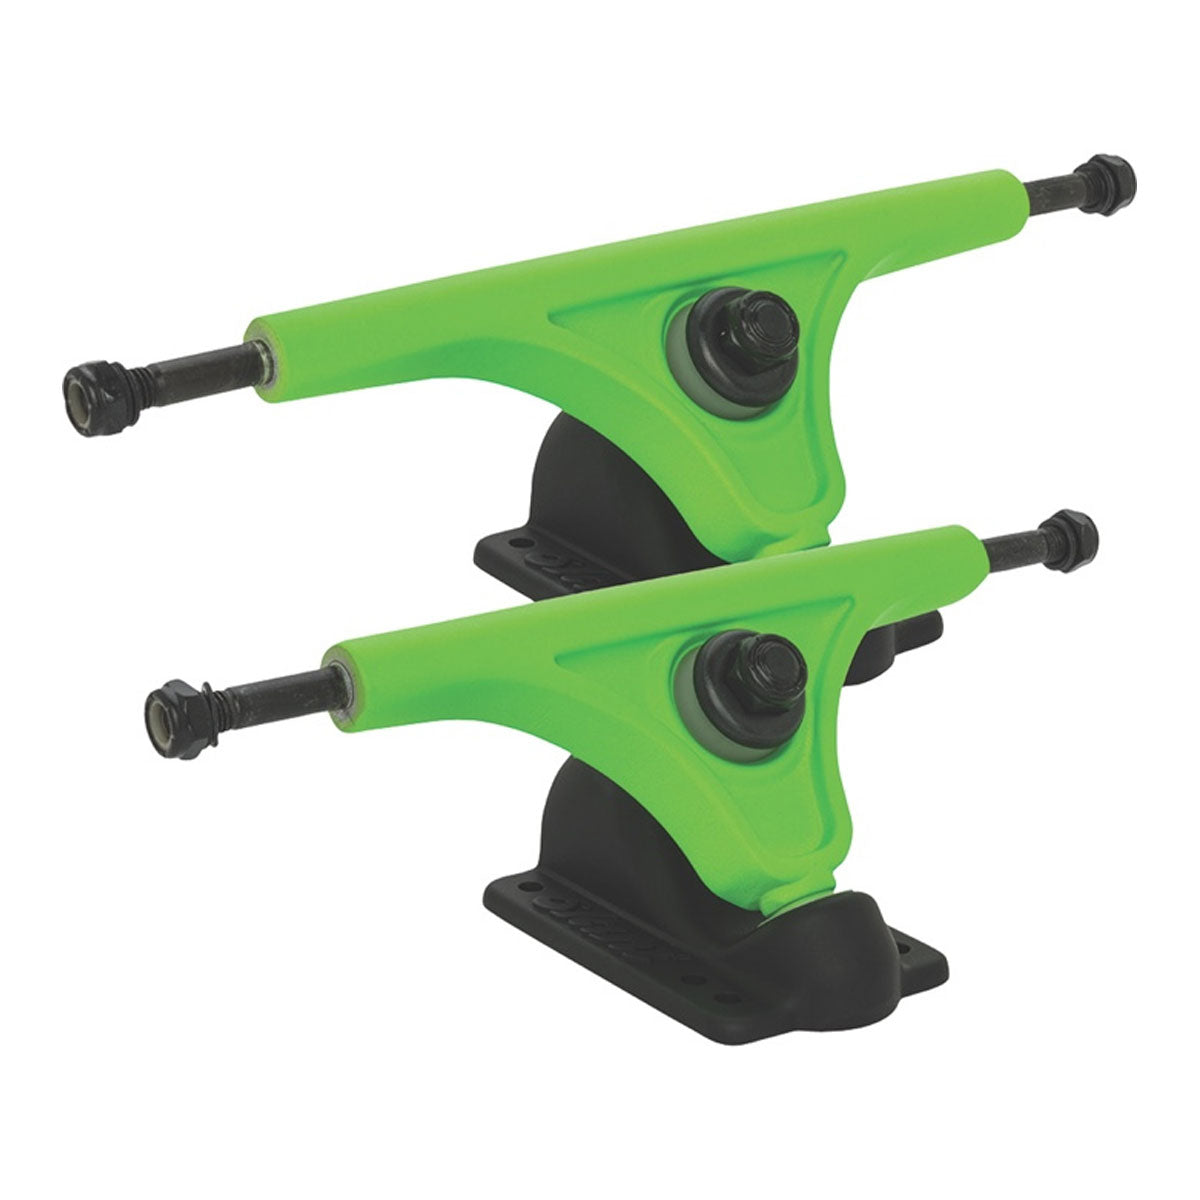 Globe Slant Mag Rev Kingpin Sets Skateboard Trucks-10425002